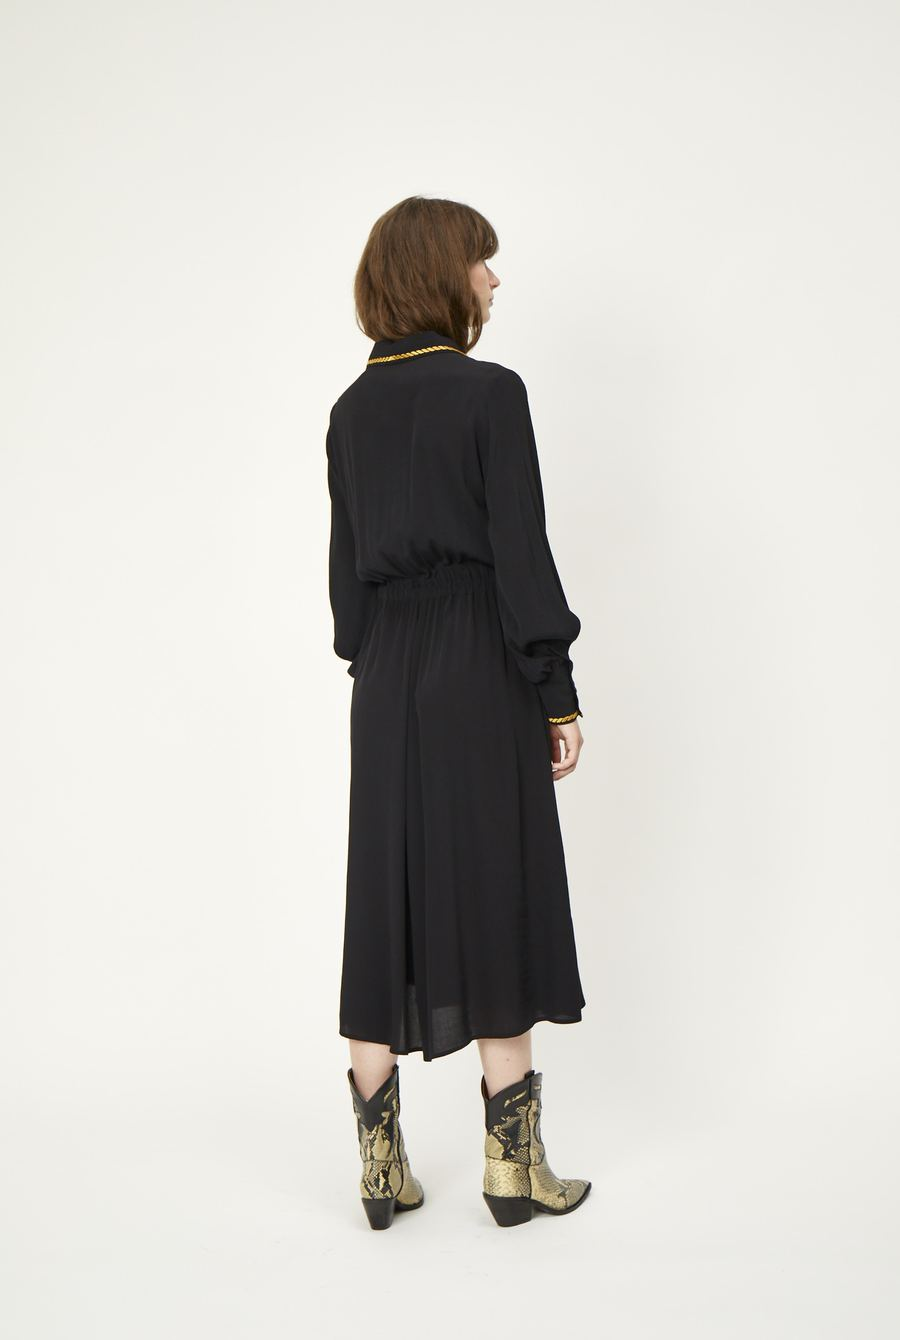 Wylie Dress in Black